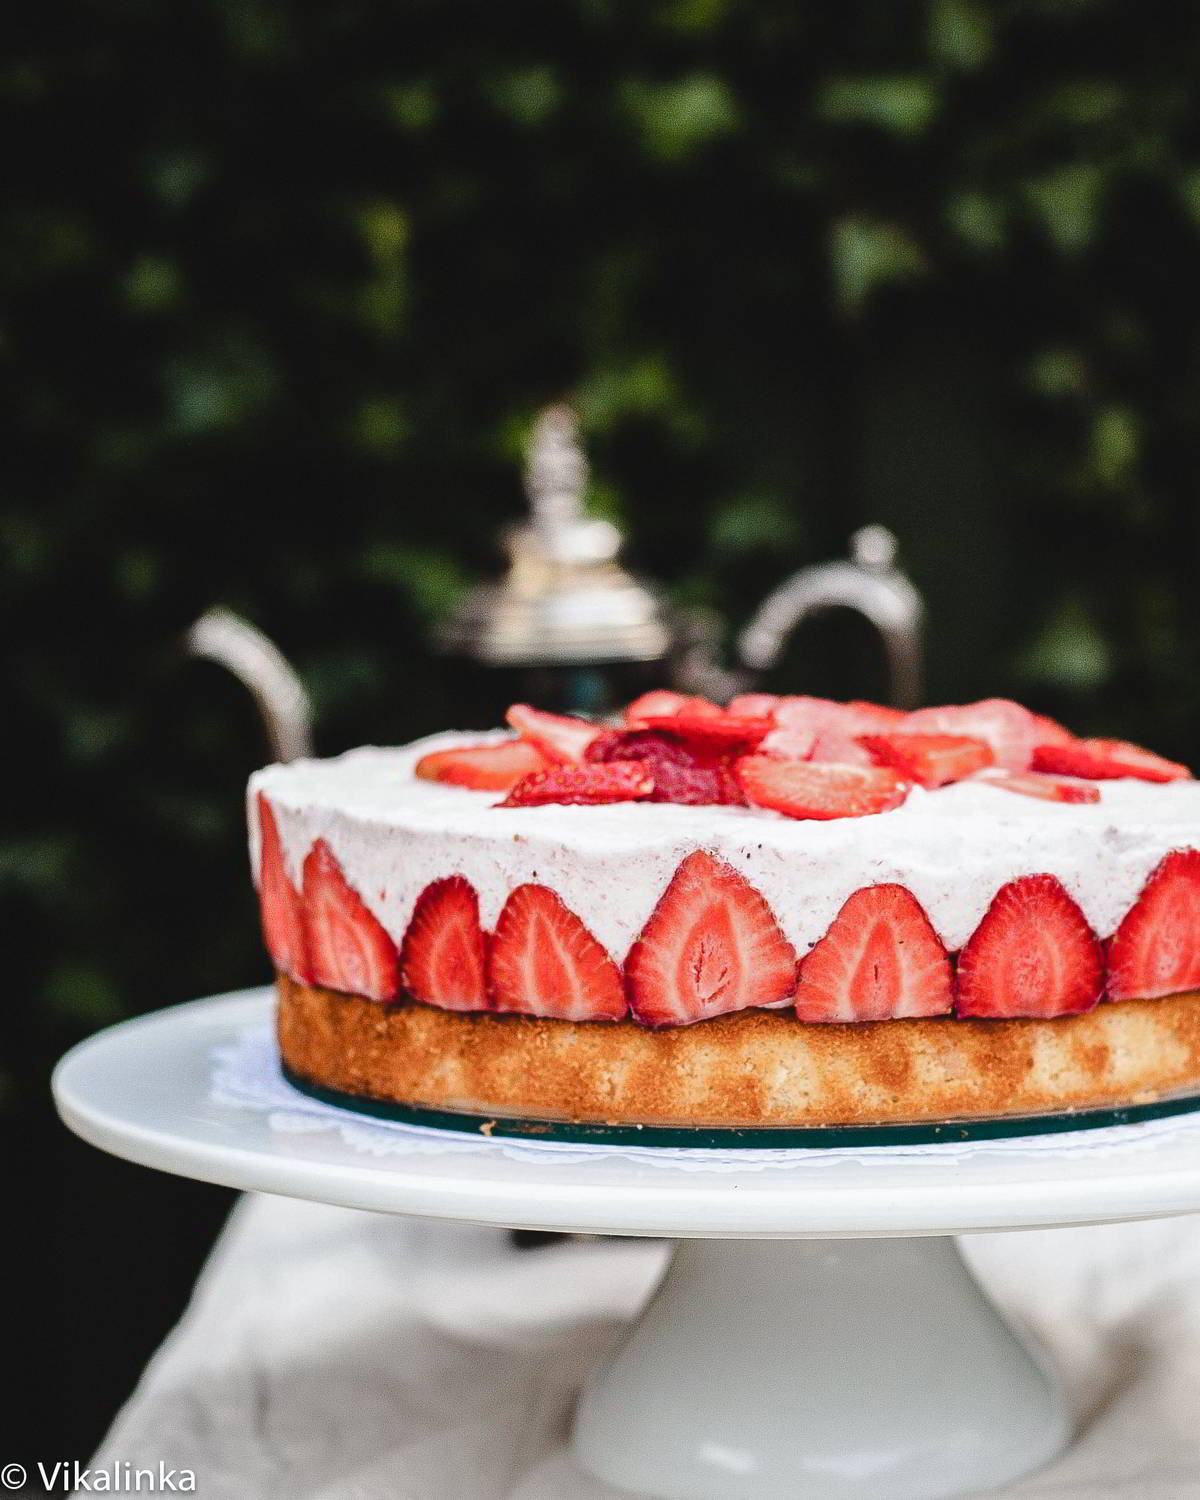 This cake is an expression of summer with its silky strawberry mousse that sits on top of a vanilla sponge.